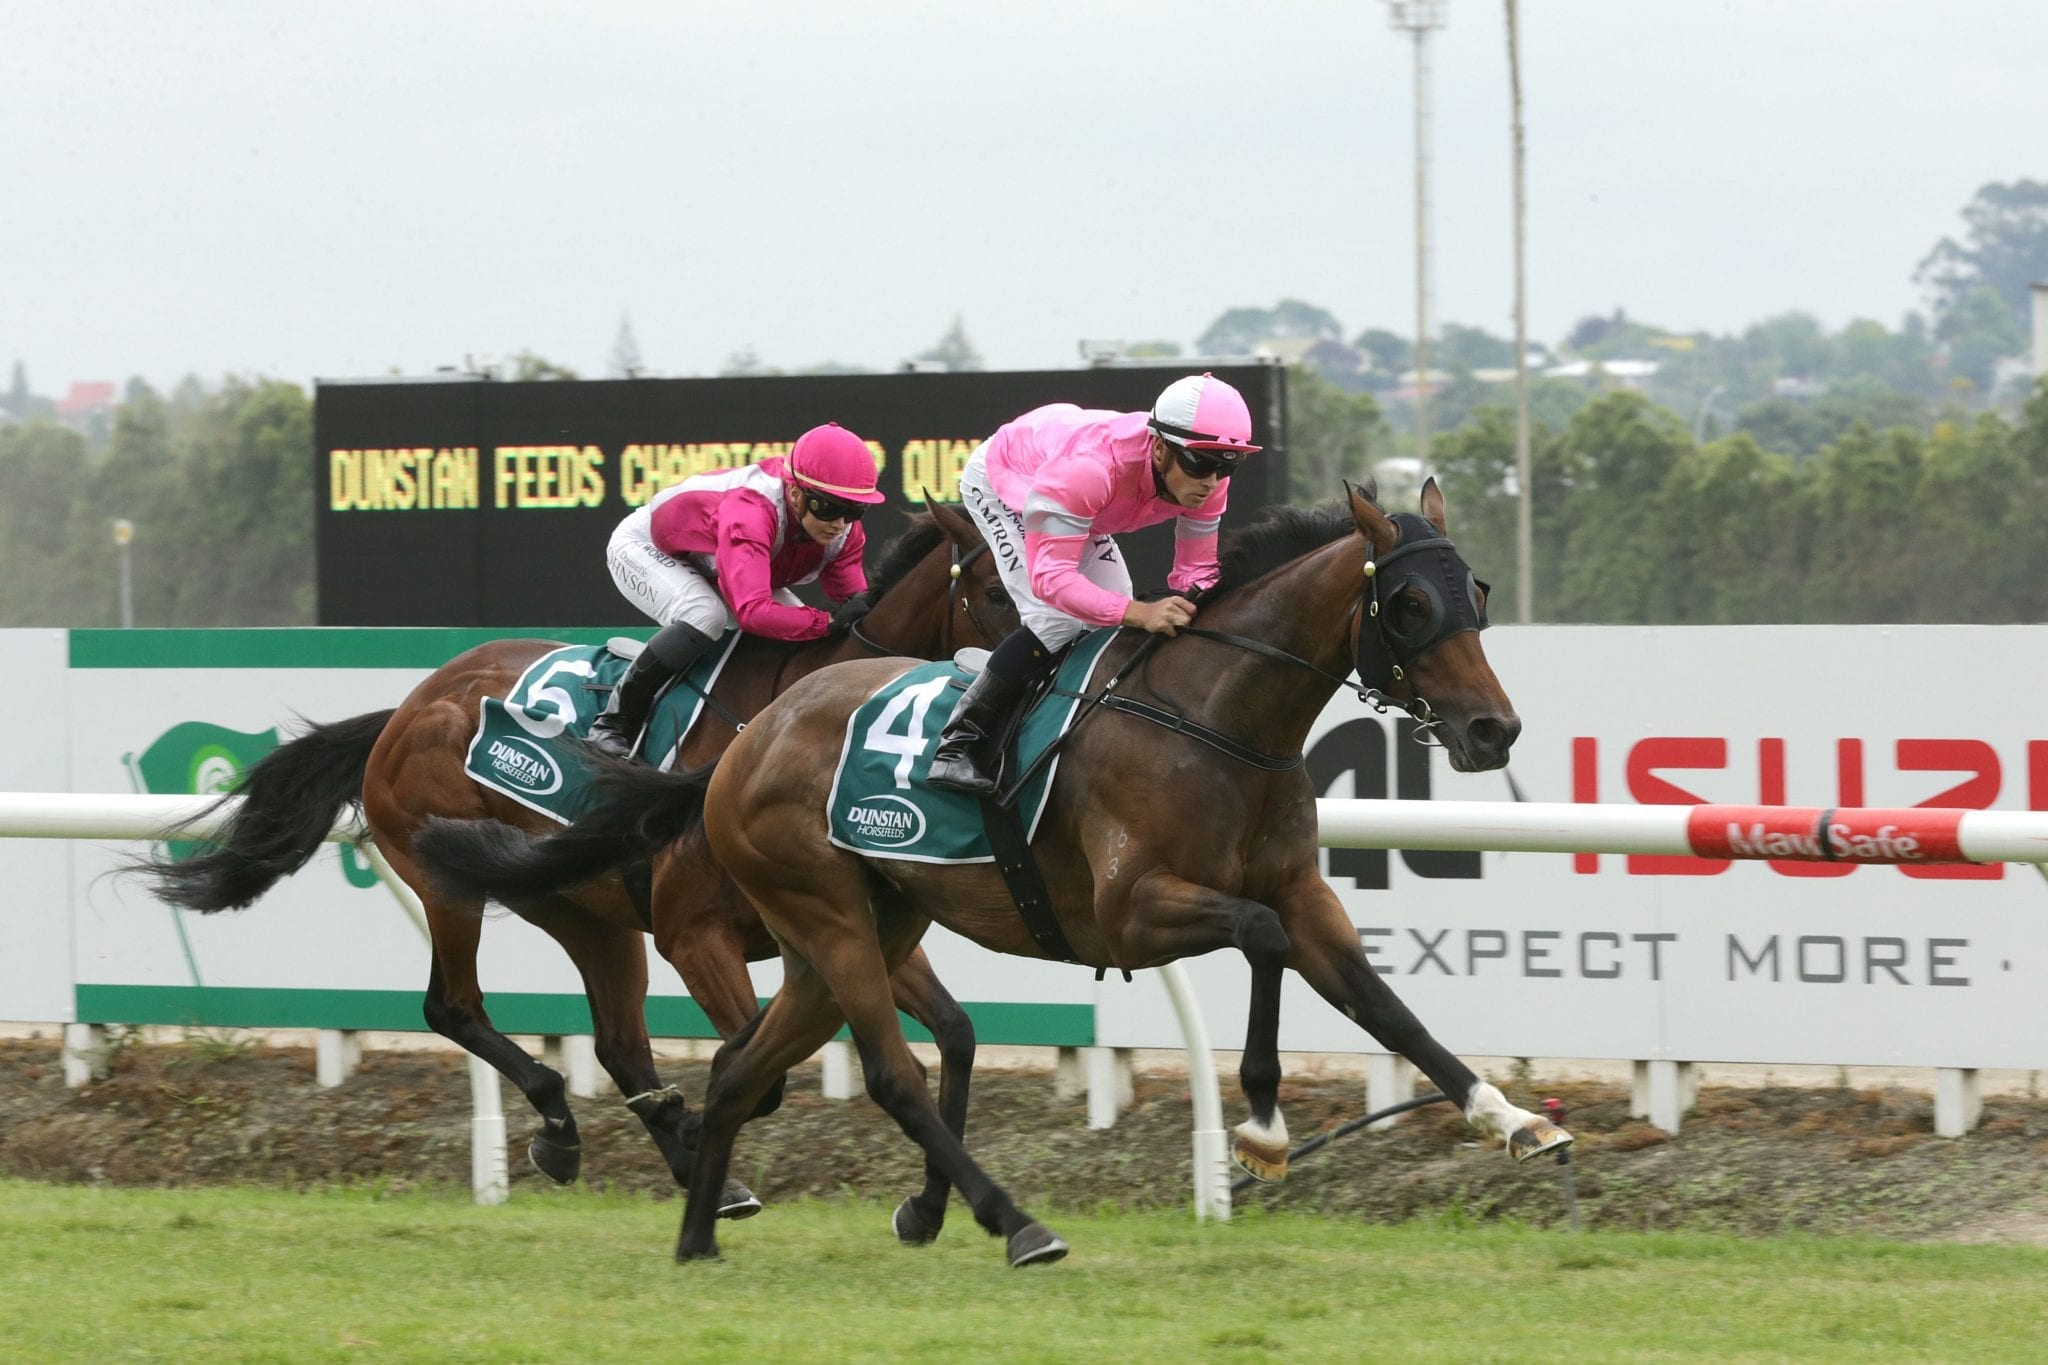 Highlad winning at Te Rapa